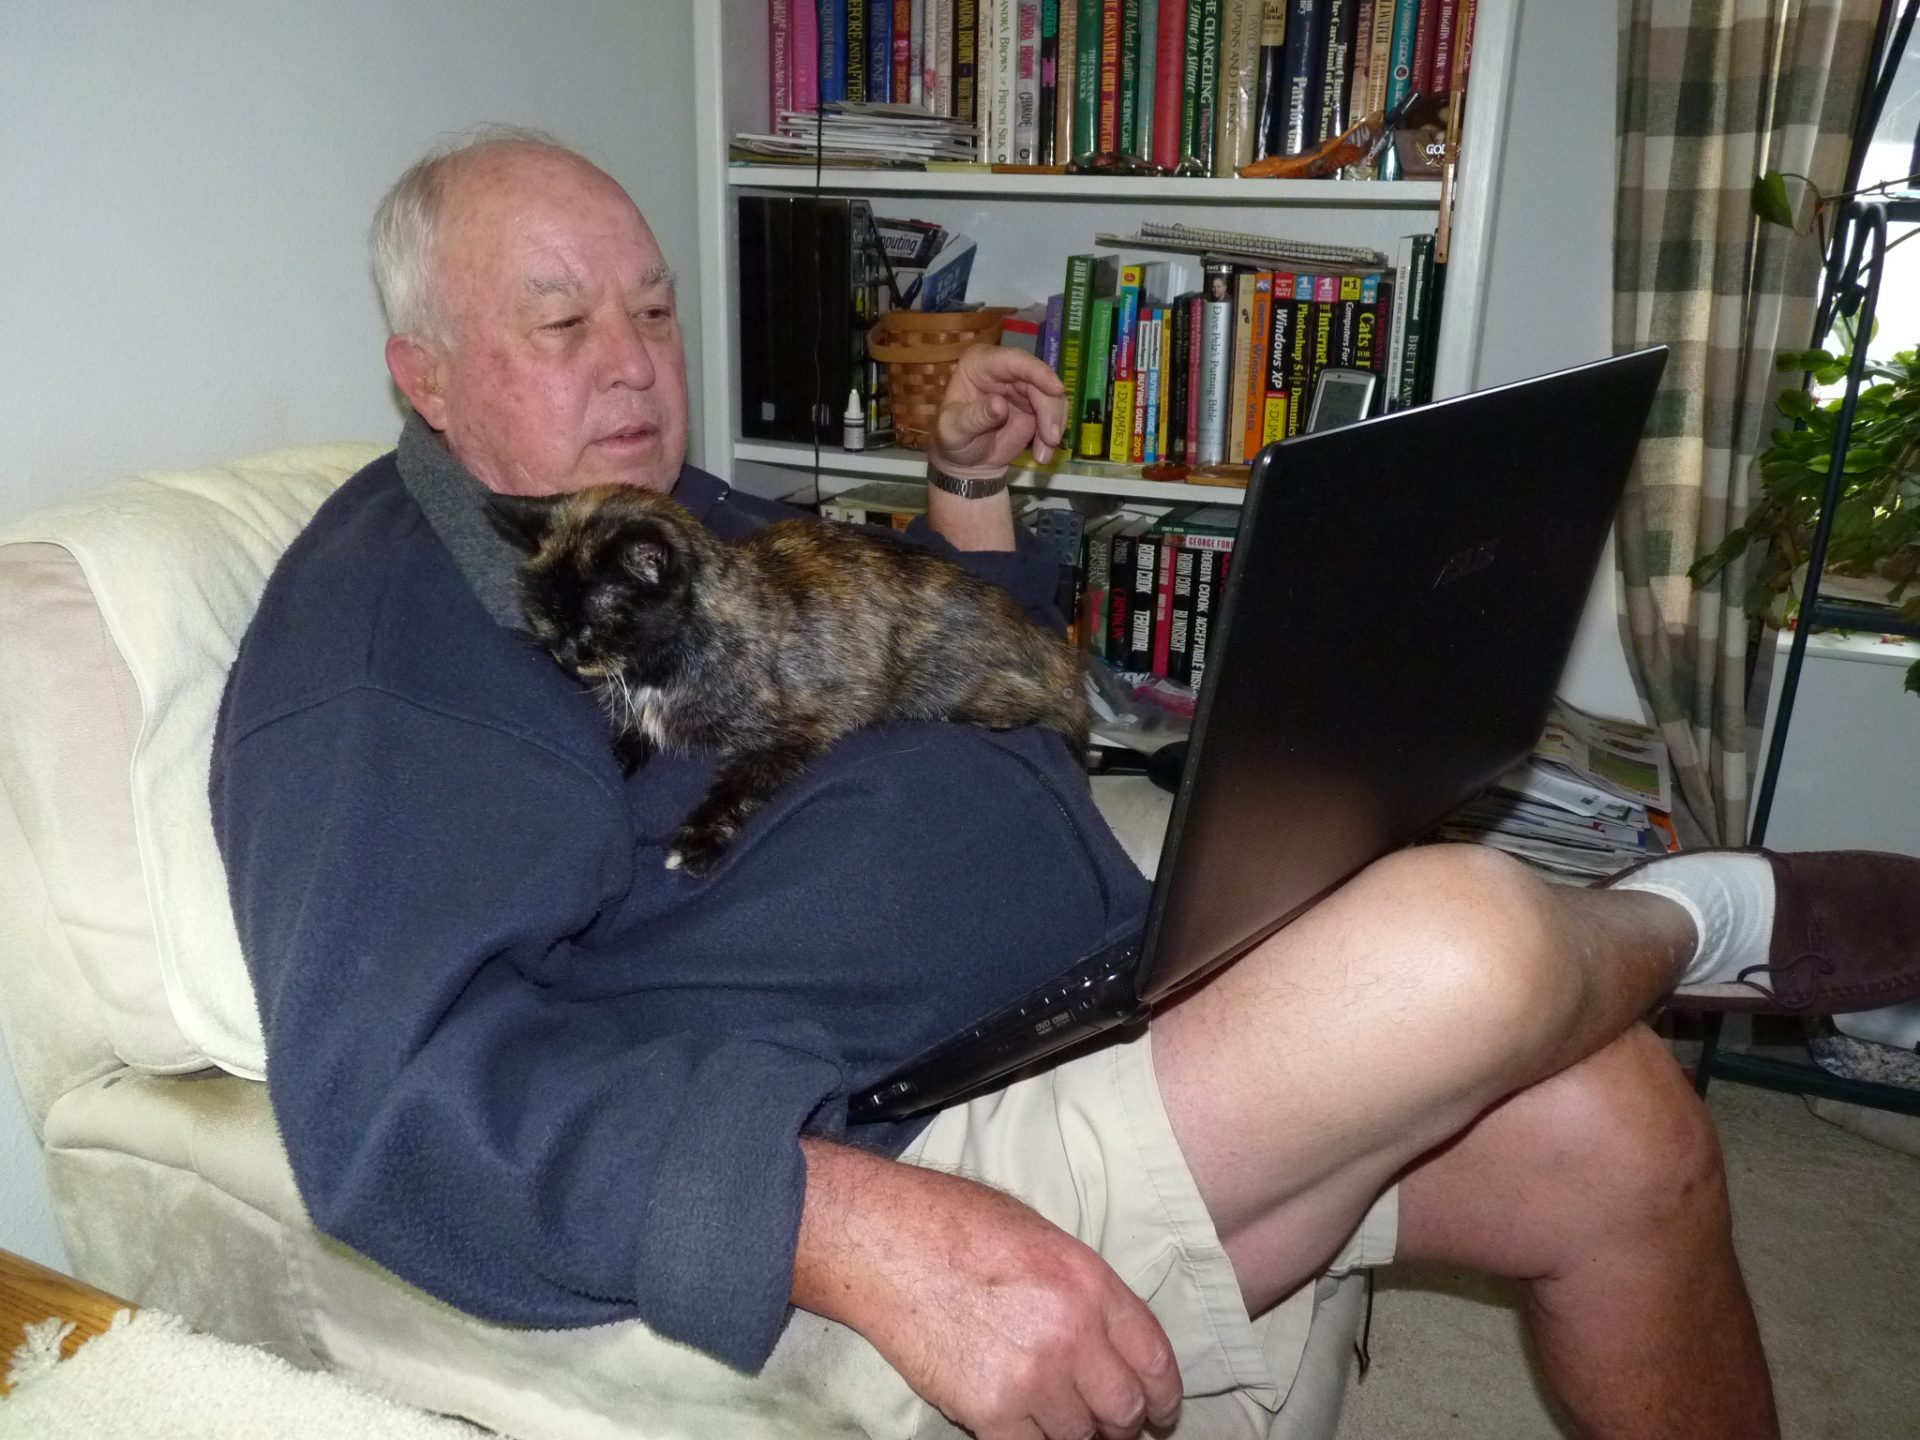 A comfortable chair, a cat, and his computer.  Let Art's day begin.